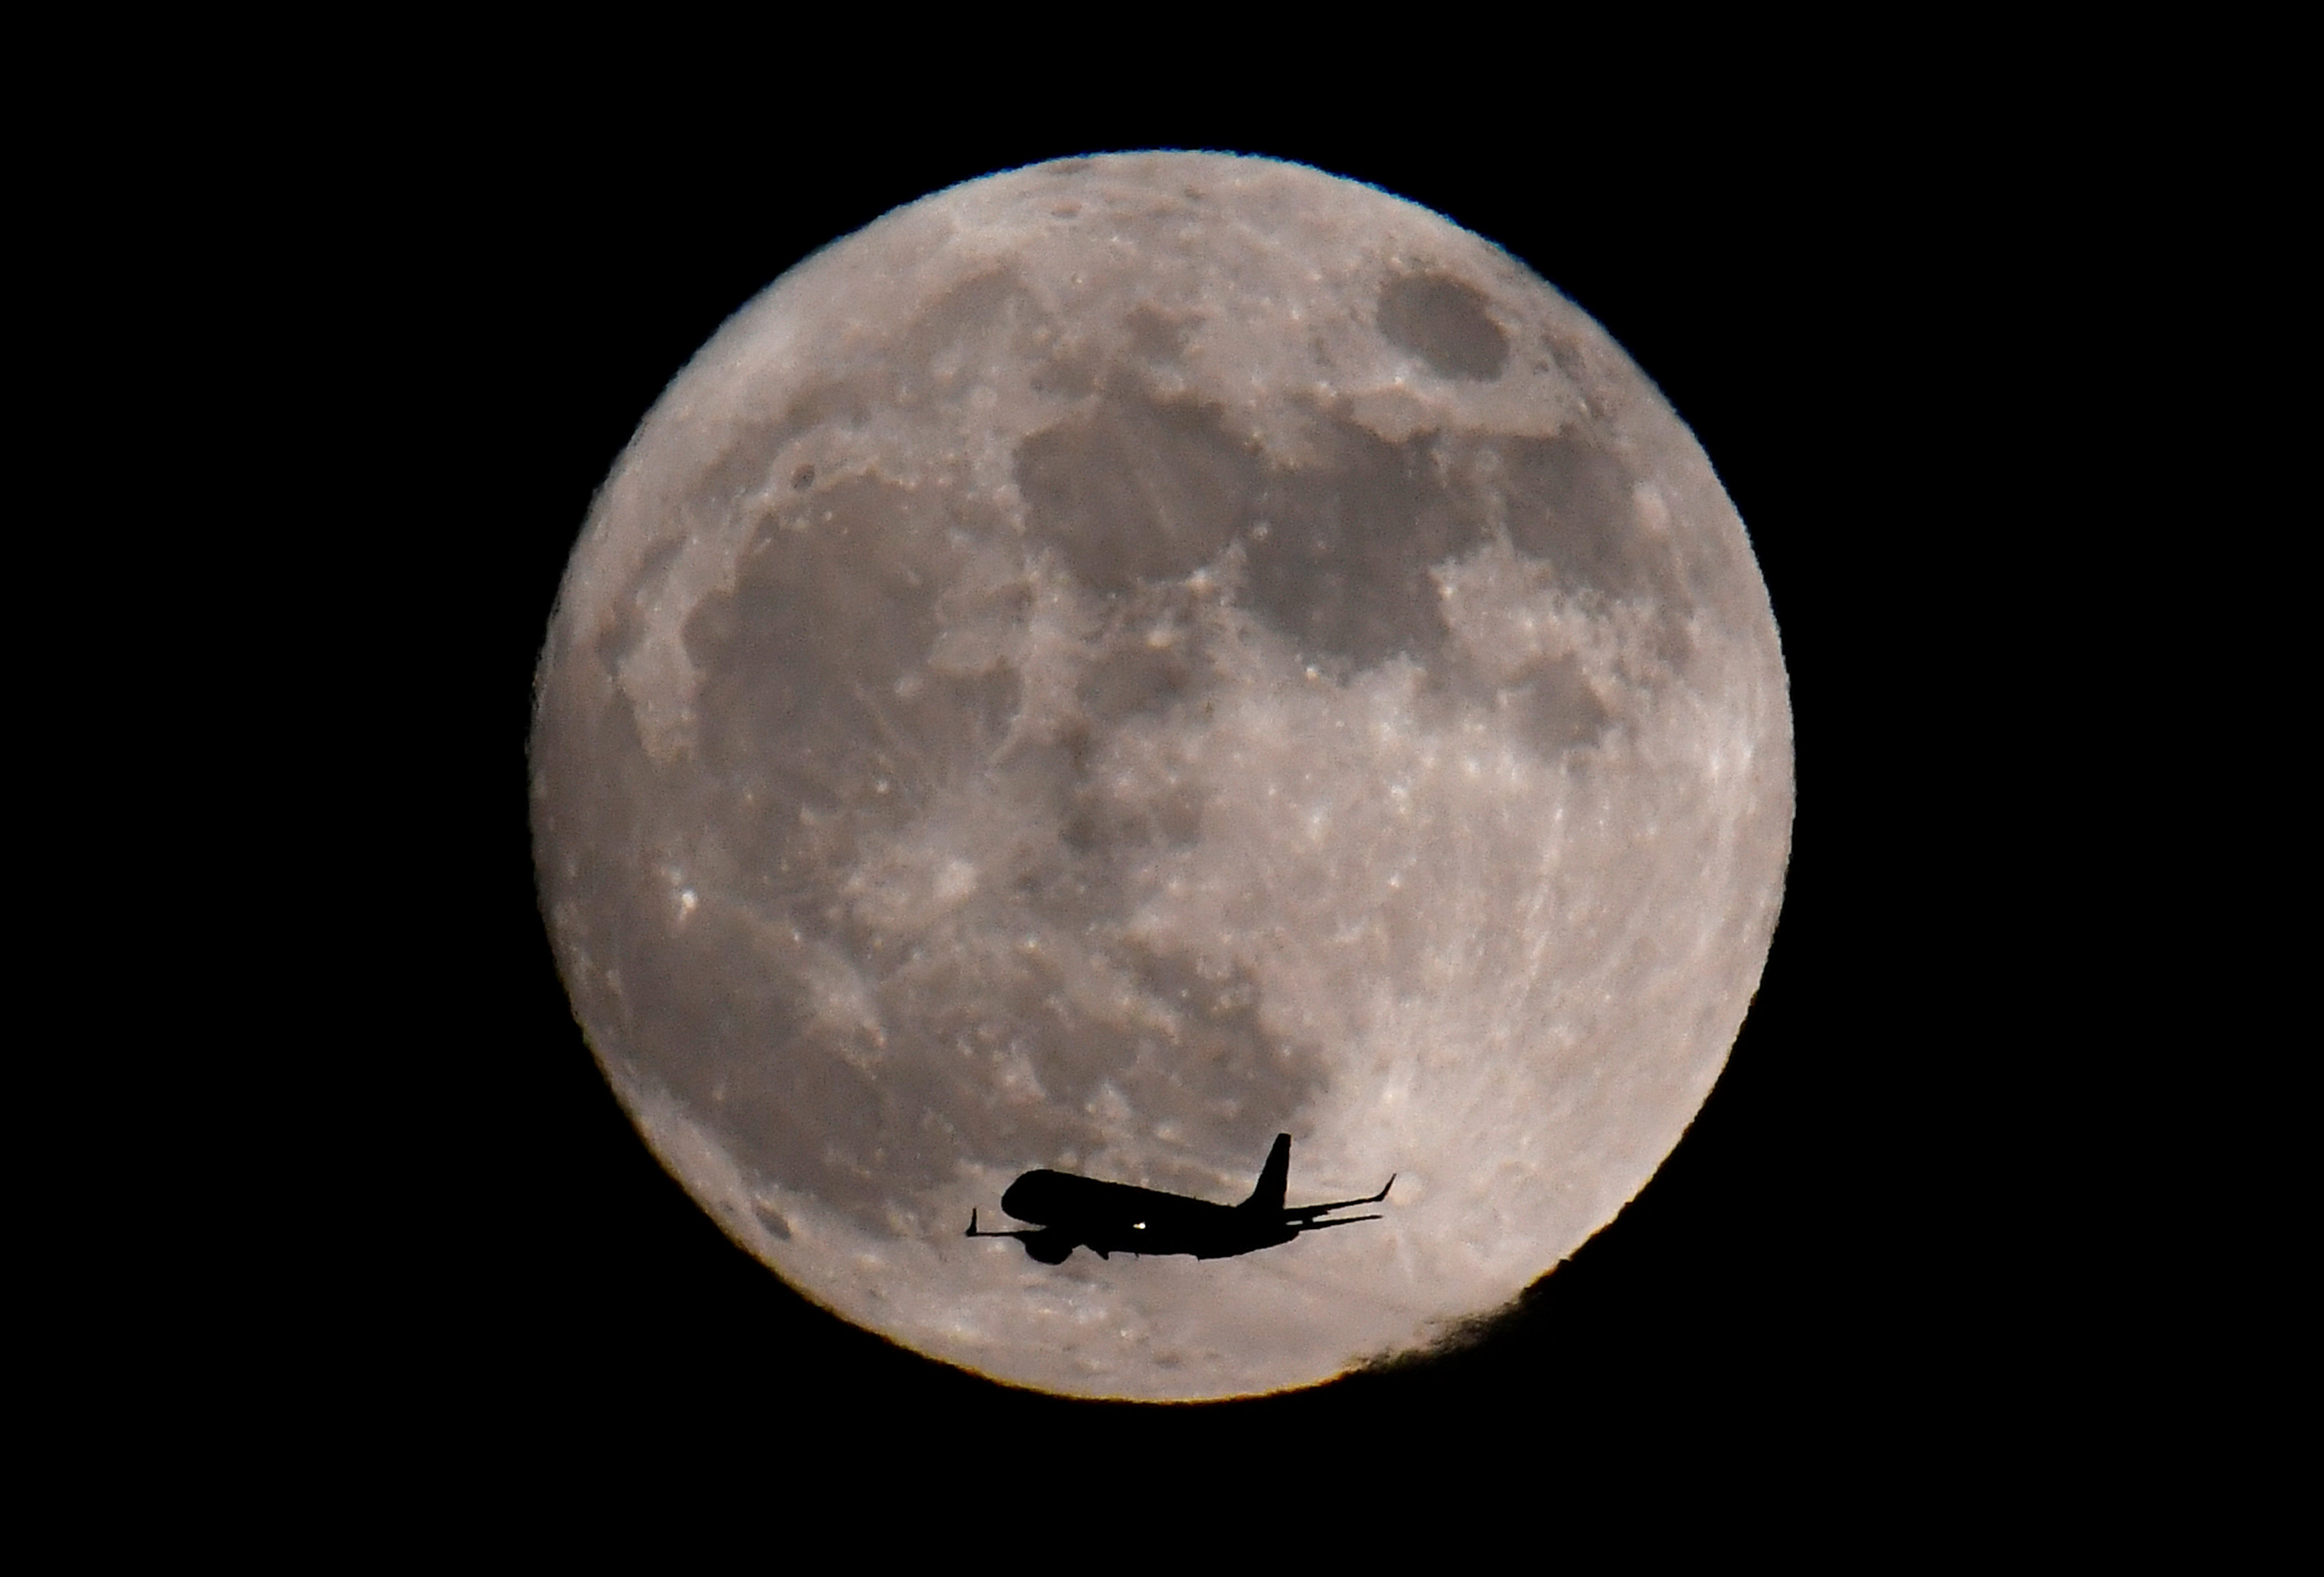 A passenger plane, with a 'supermoon' full moon seen behind, makes its final landing approach towards Heathrow Airport in London